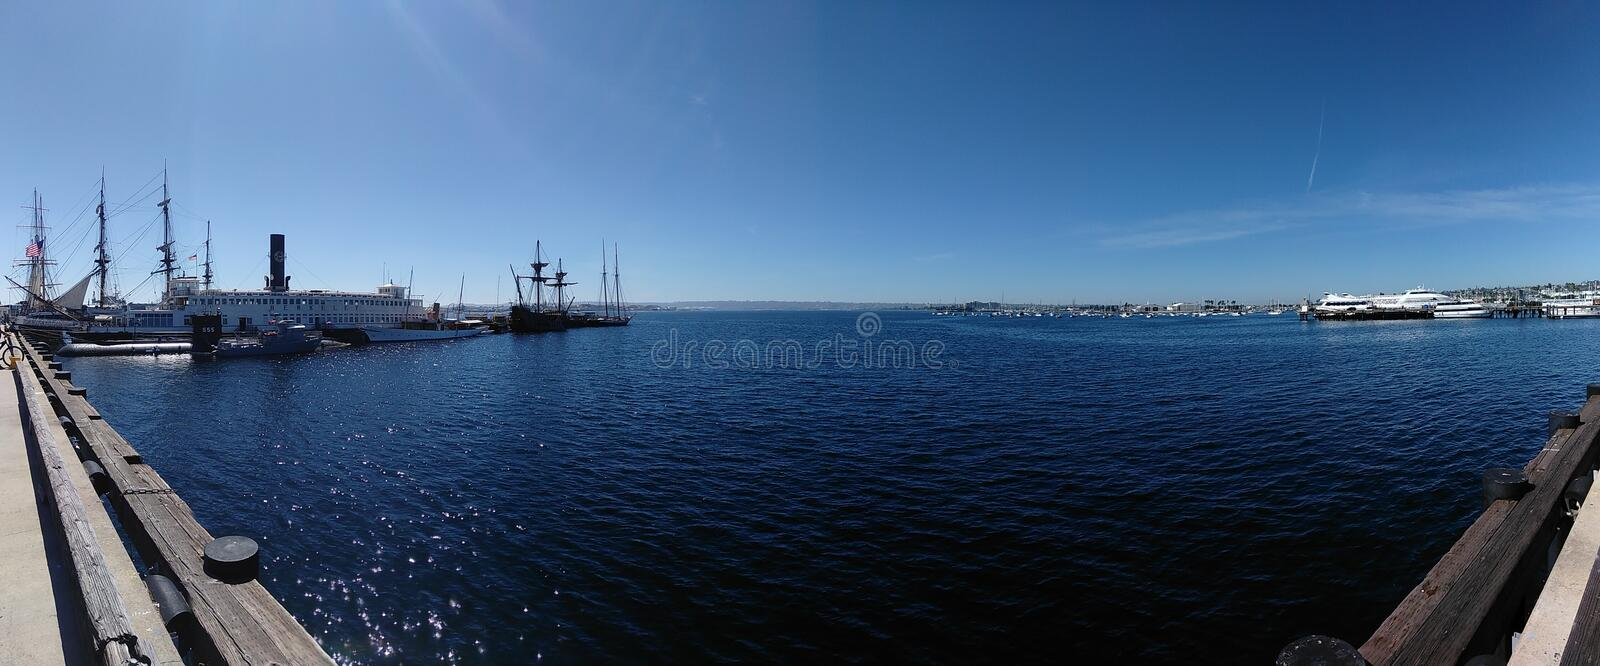 San Diego Harbor, San Diego California images libres de droits